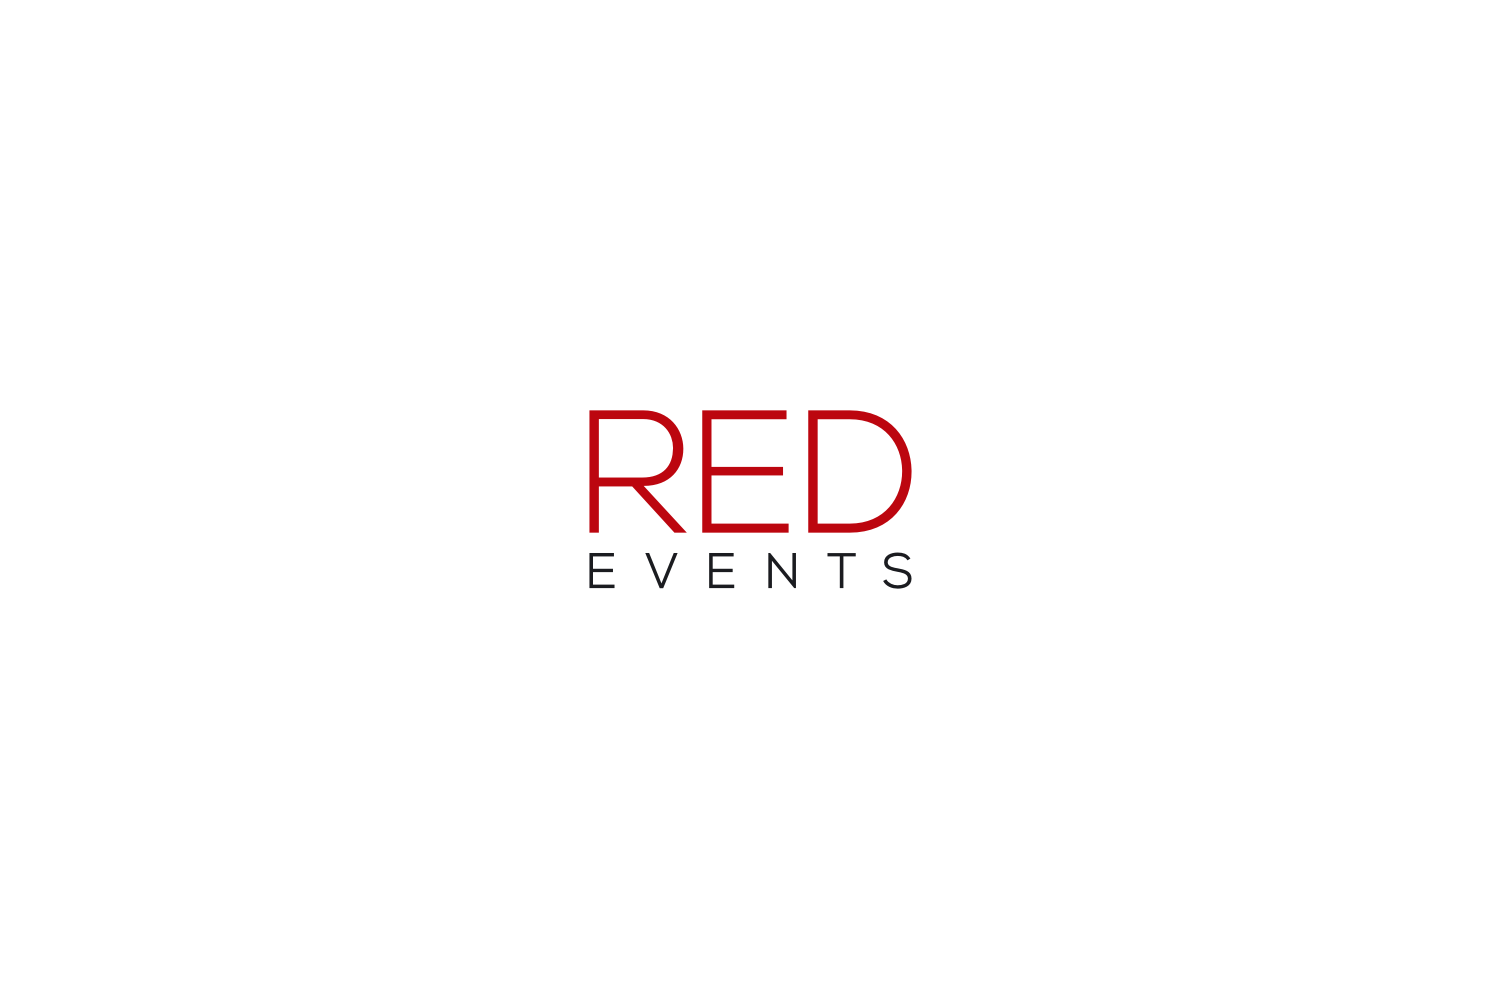 Create an upscale, modern but simple logo for an event planning company